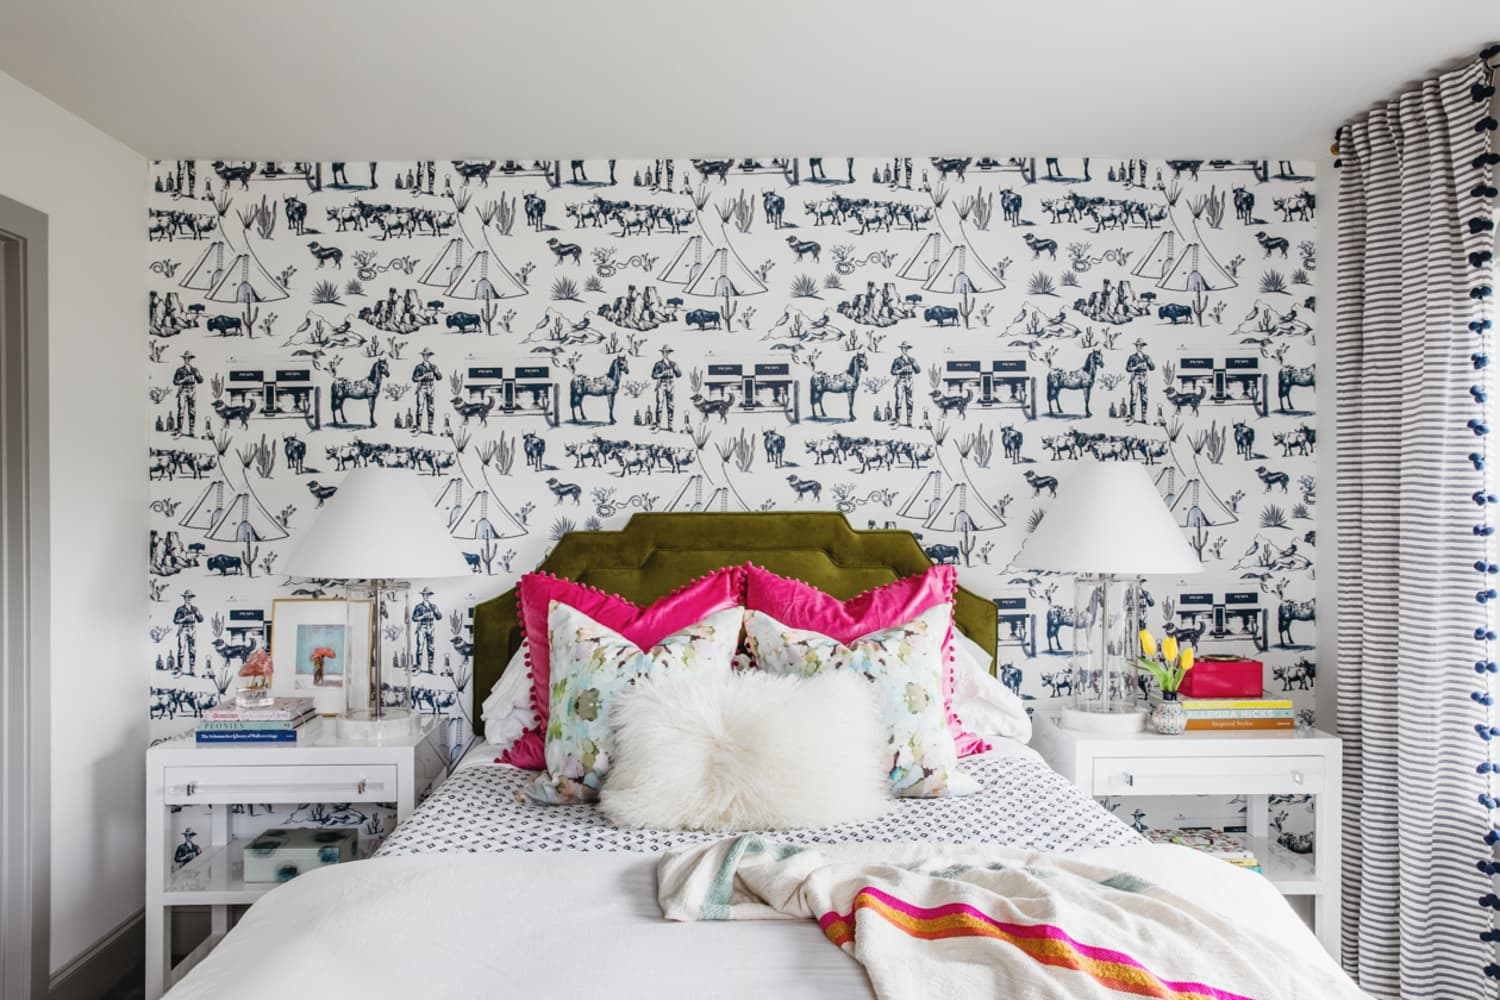 4 Tips for Using Bold Color in a Bedroom if You're Not into Color, According to a Designer